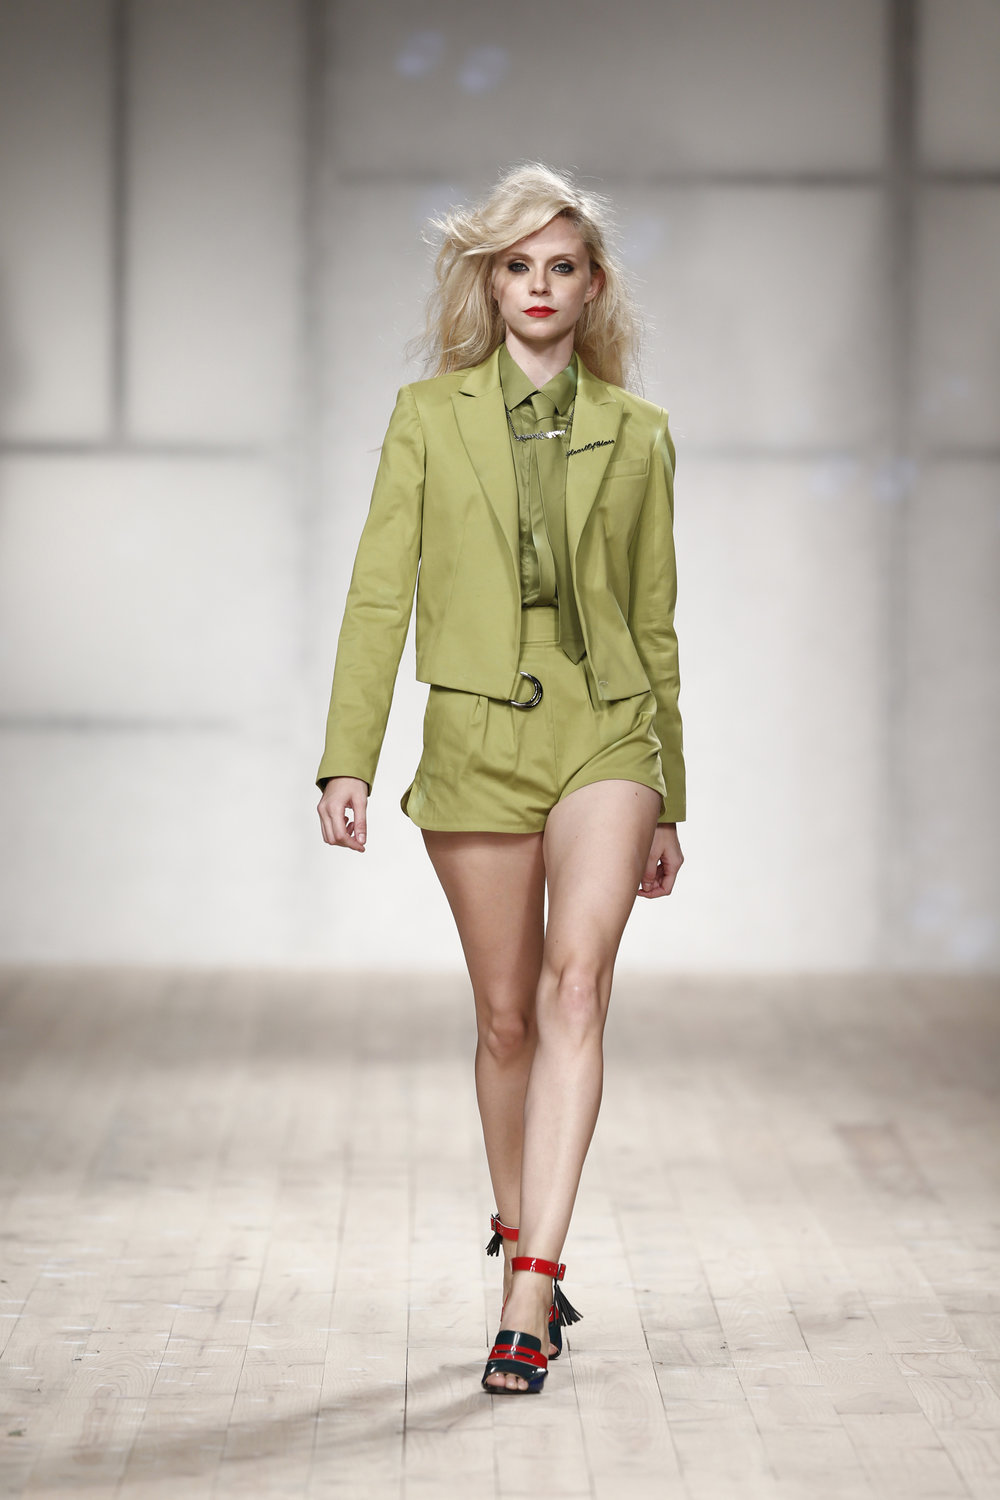 green shorts  One available size 34 Original Price 170€ | Discount Price 85€ Ref. LCss17s05